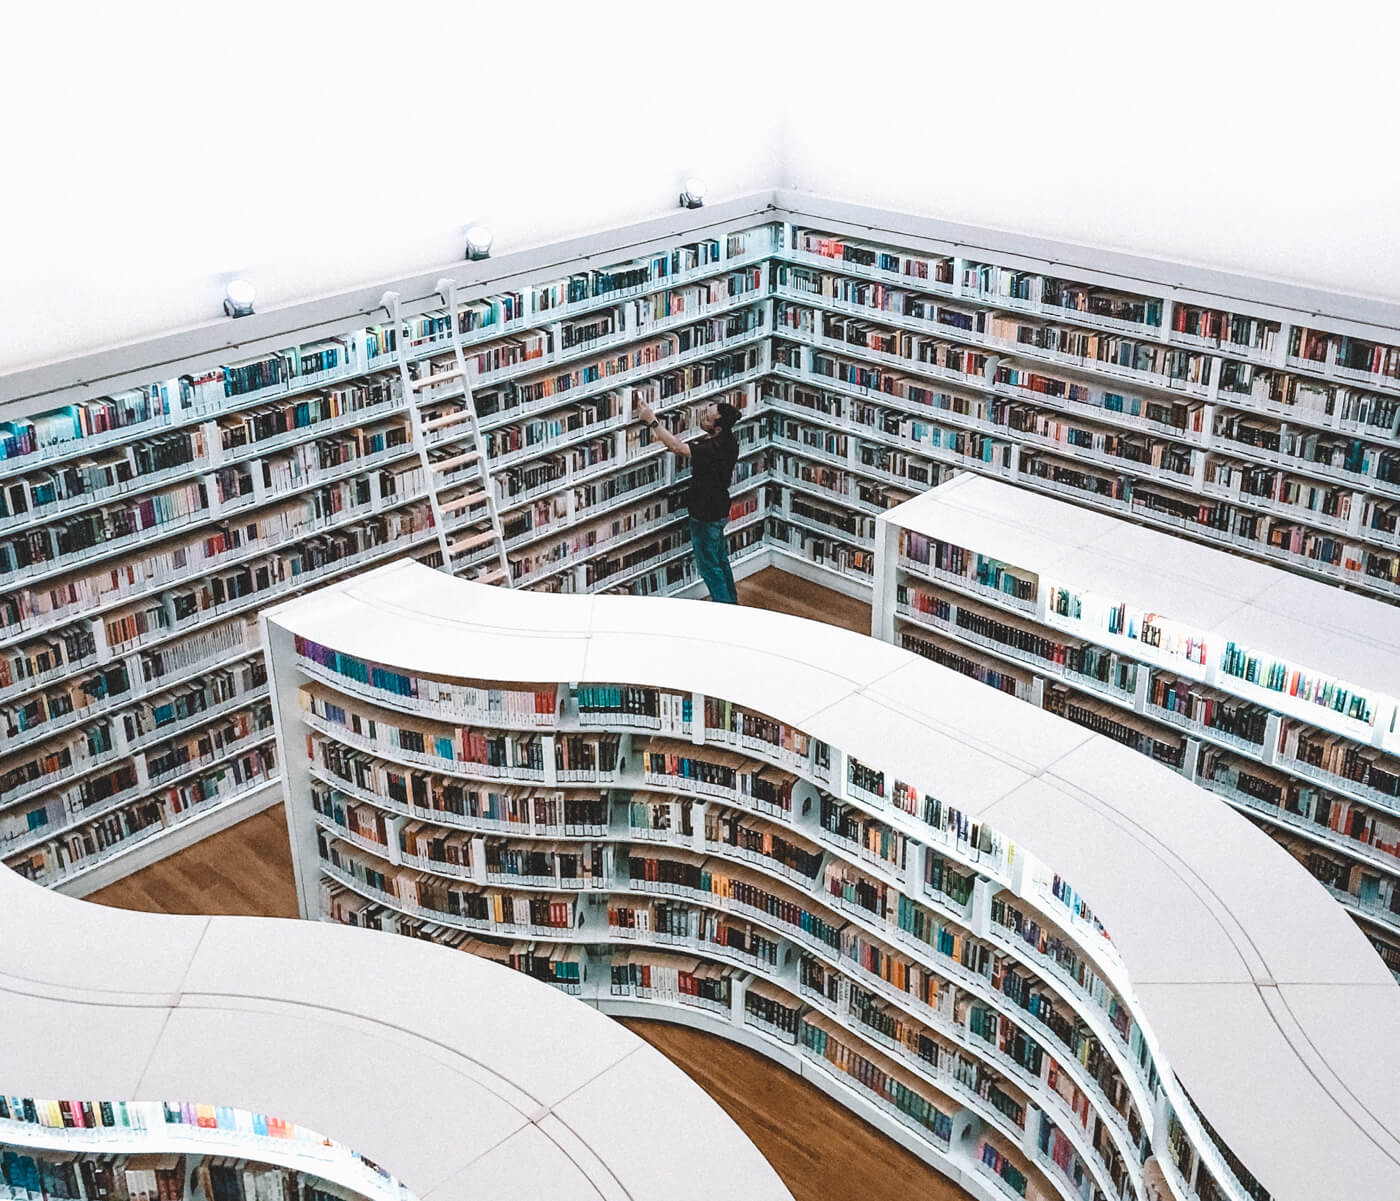 a photo with a man searching something in a curved library